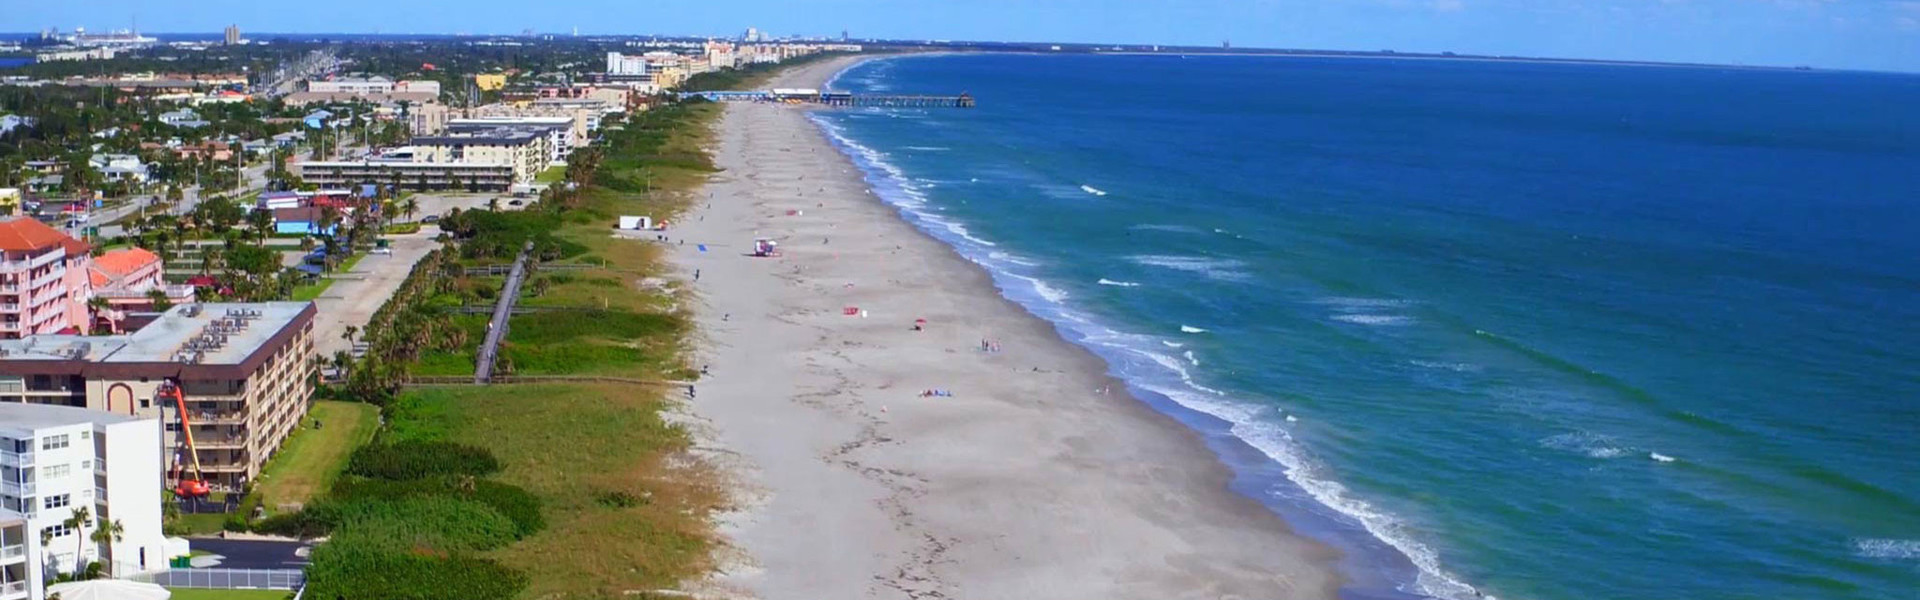 Boy And Girl Scout Hotel Rates In Cocoa Beach - Ariel shot of Cocoa Beach